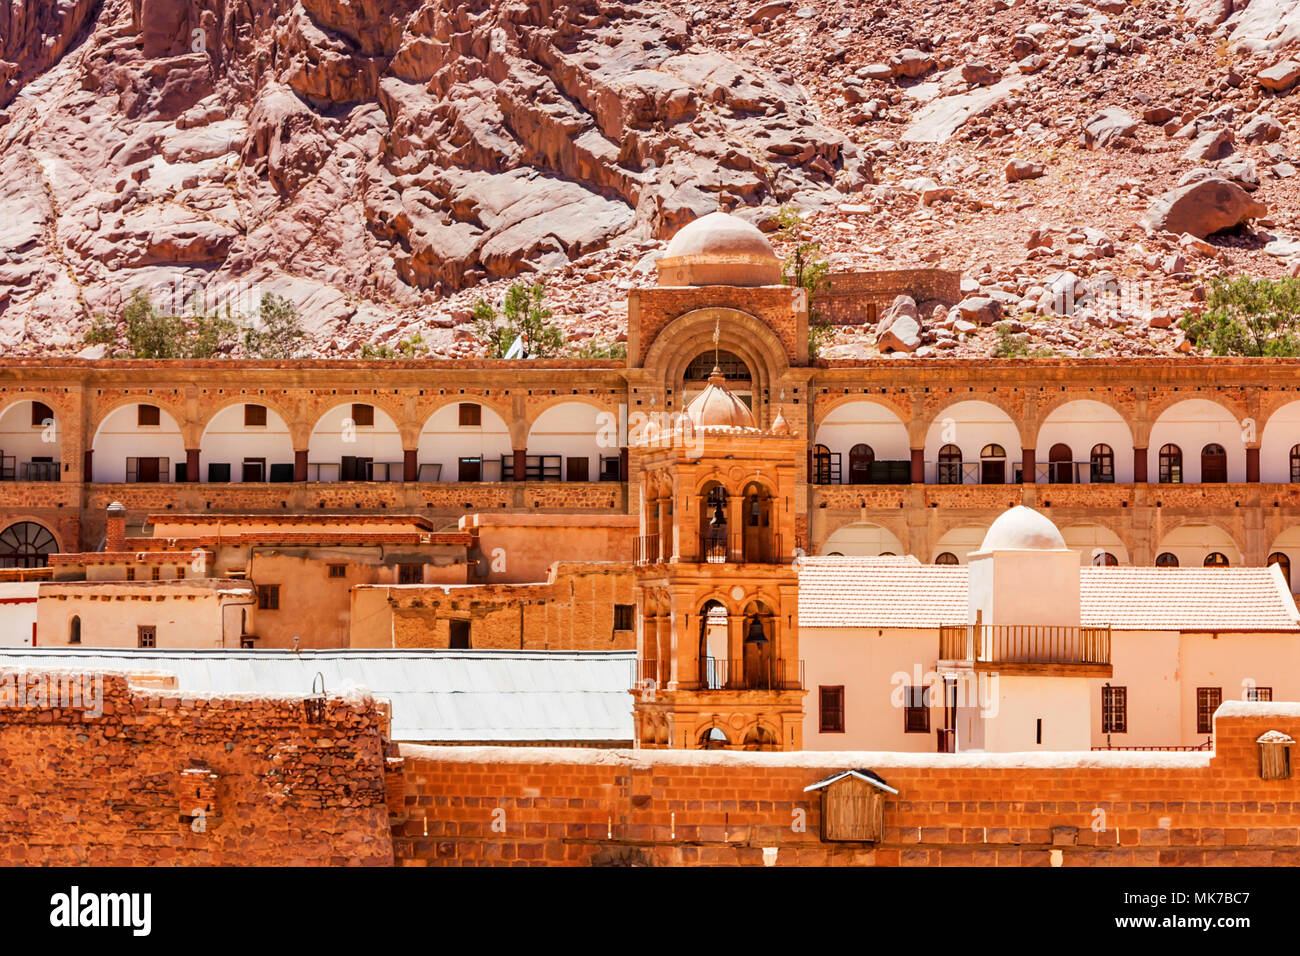 Clocher de Saint Catherine's Monastery, Egypte Photo Stock